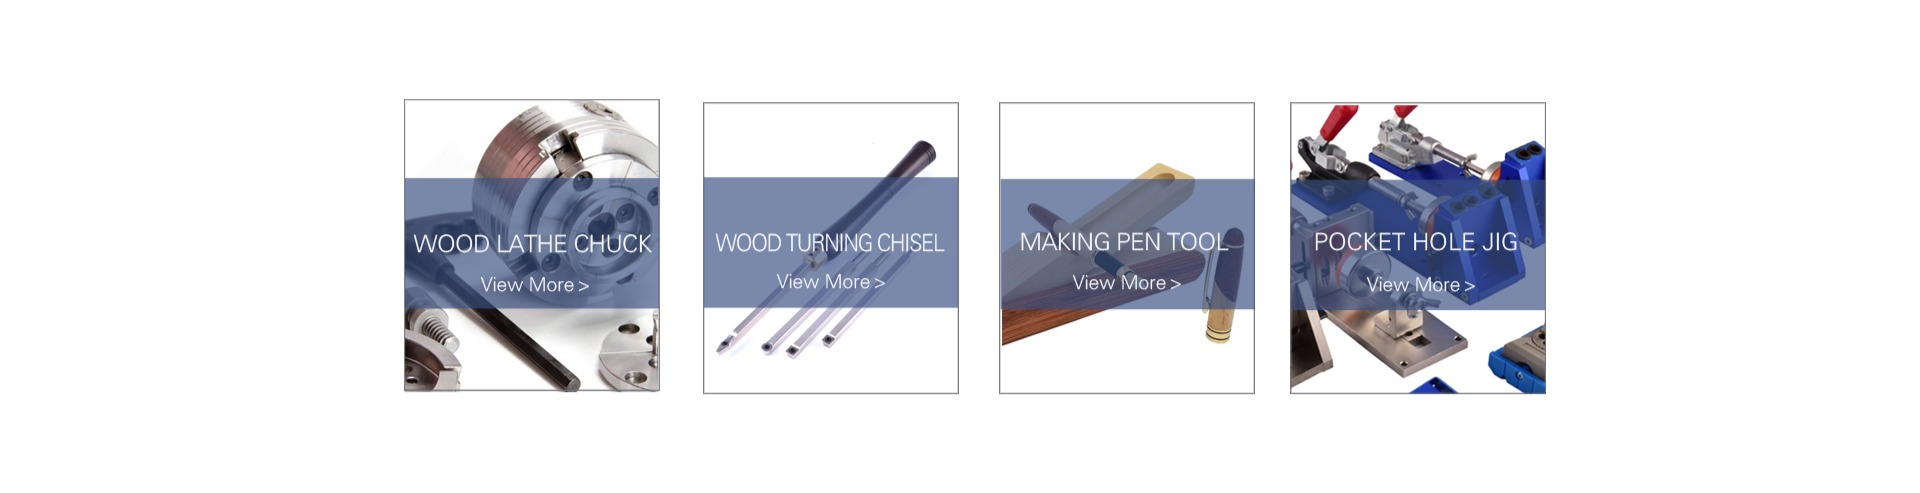 woodcraft Store - Small Orders Online Store, Hot Selling and